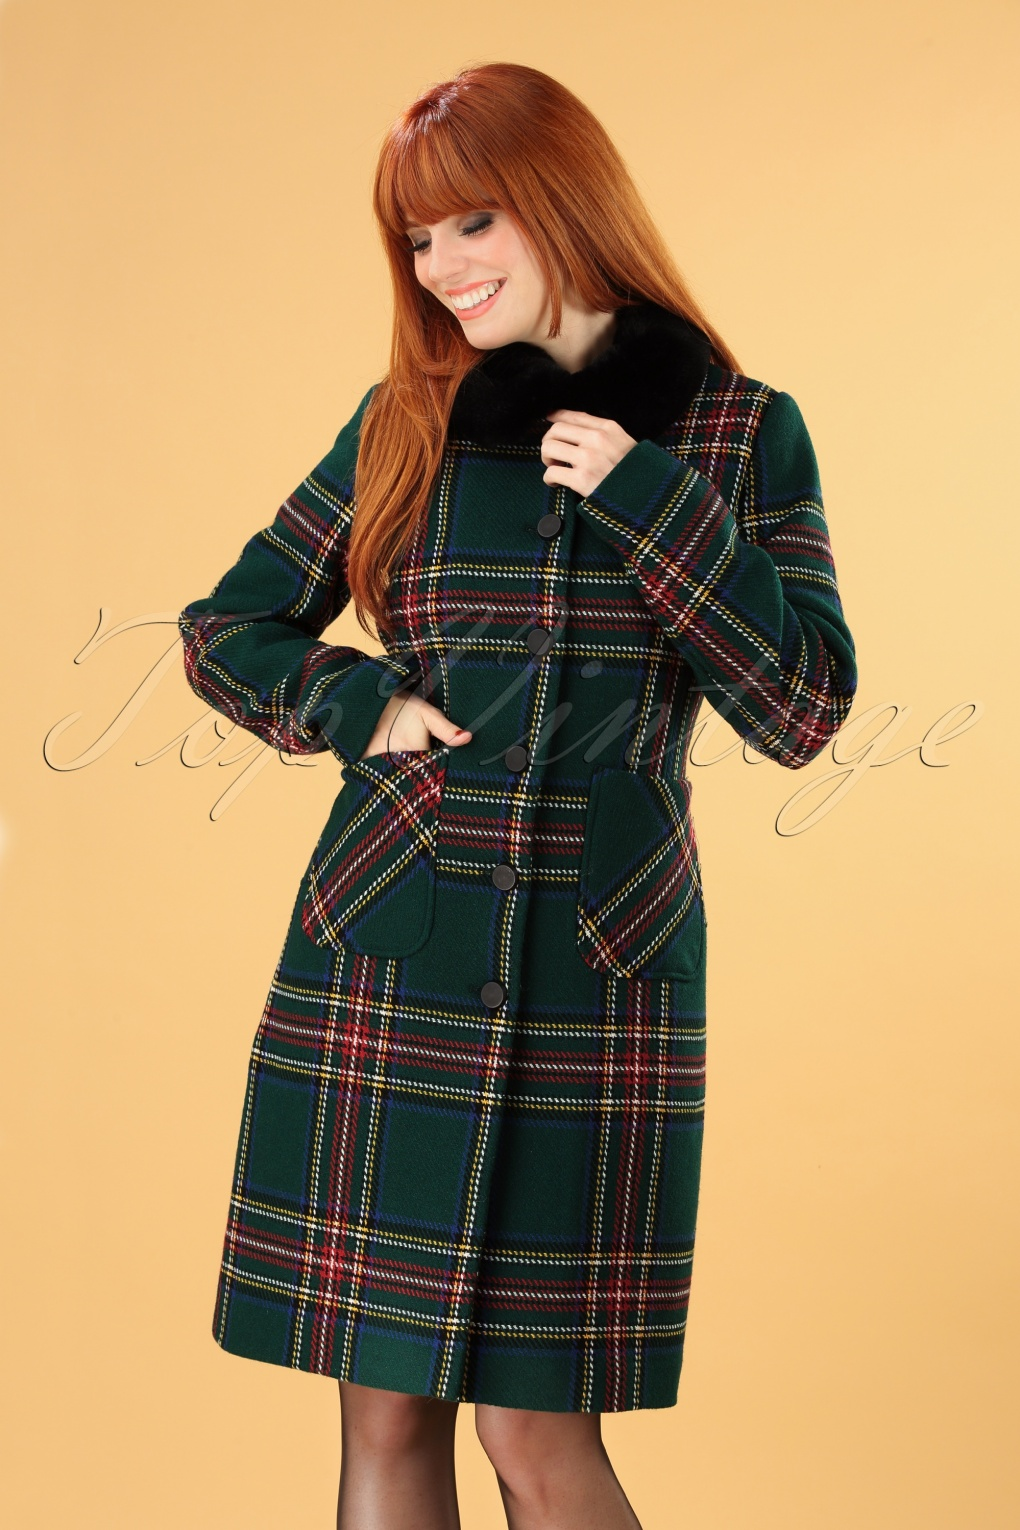 Vintage Coats & Jackets | Retro Coats and Jackets 60s Nathalie Highlands Coat in Green £113.20 AT vintagedancer.com